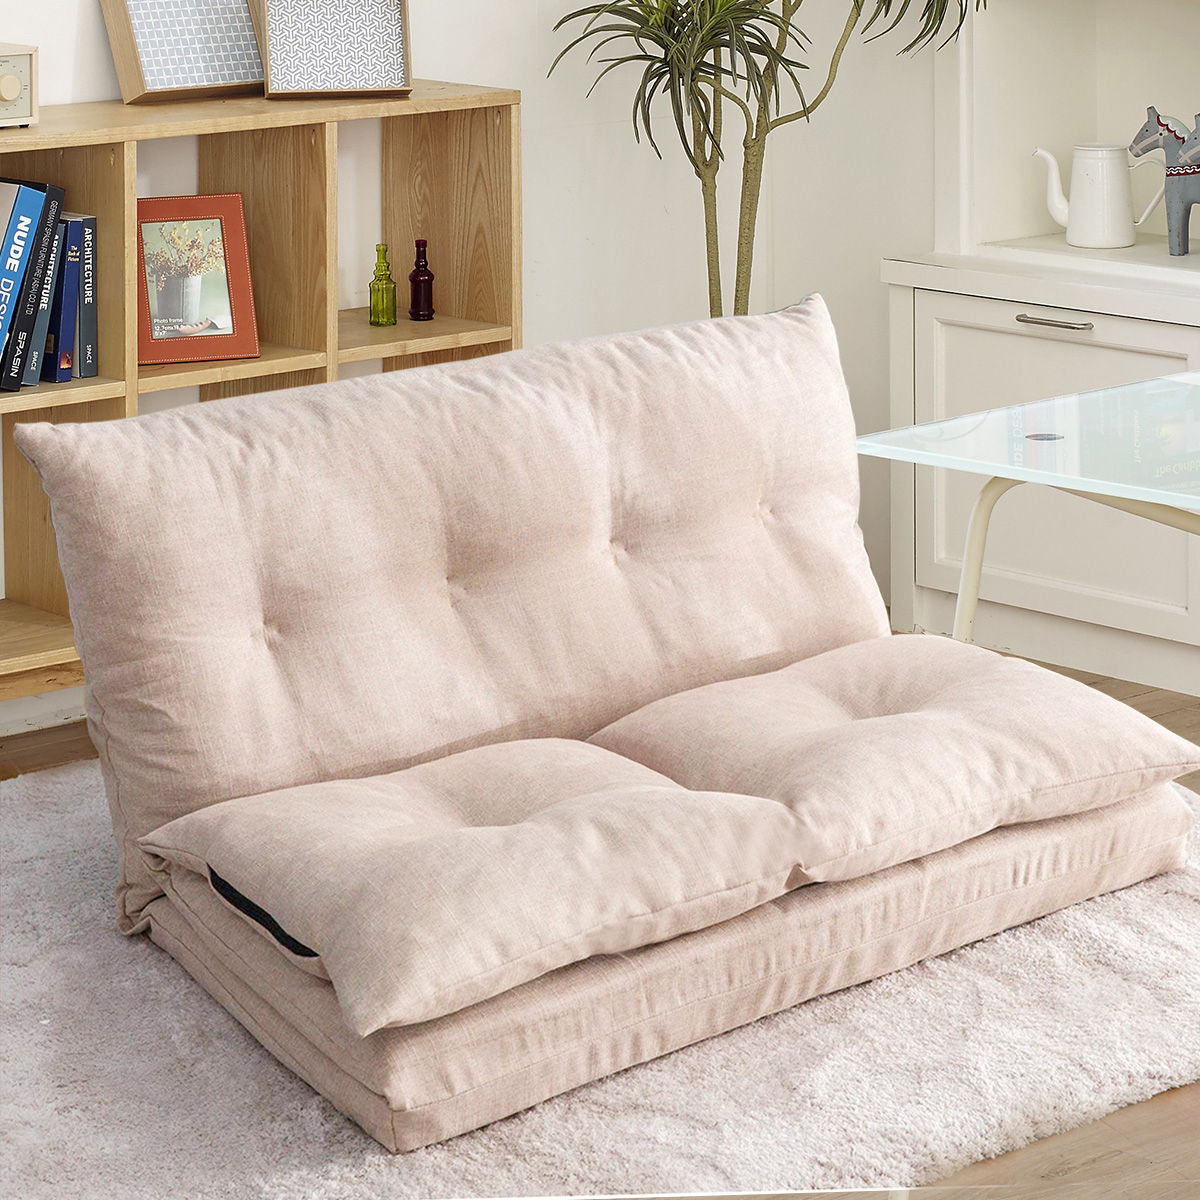 Adjustable Fabric Folding Chaise Lounge Chair